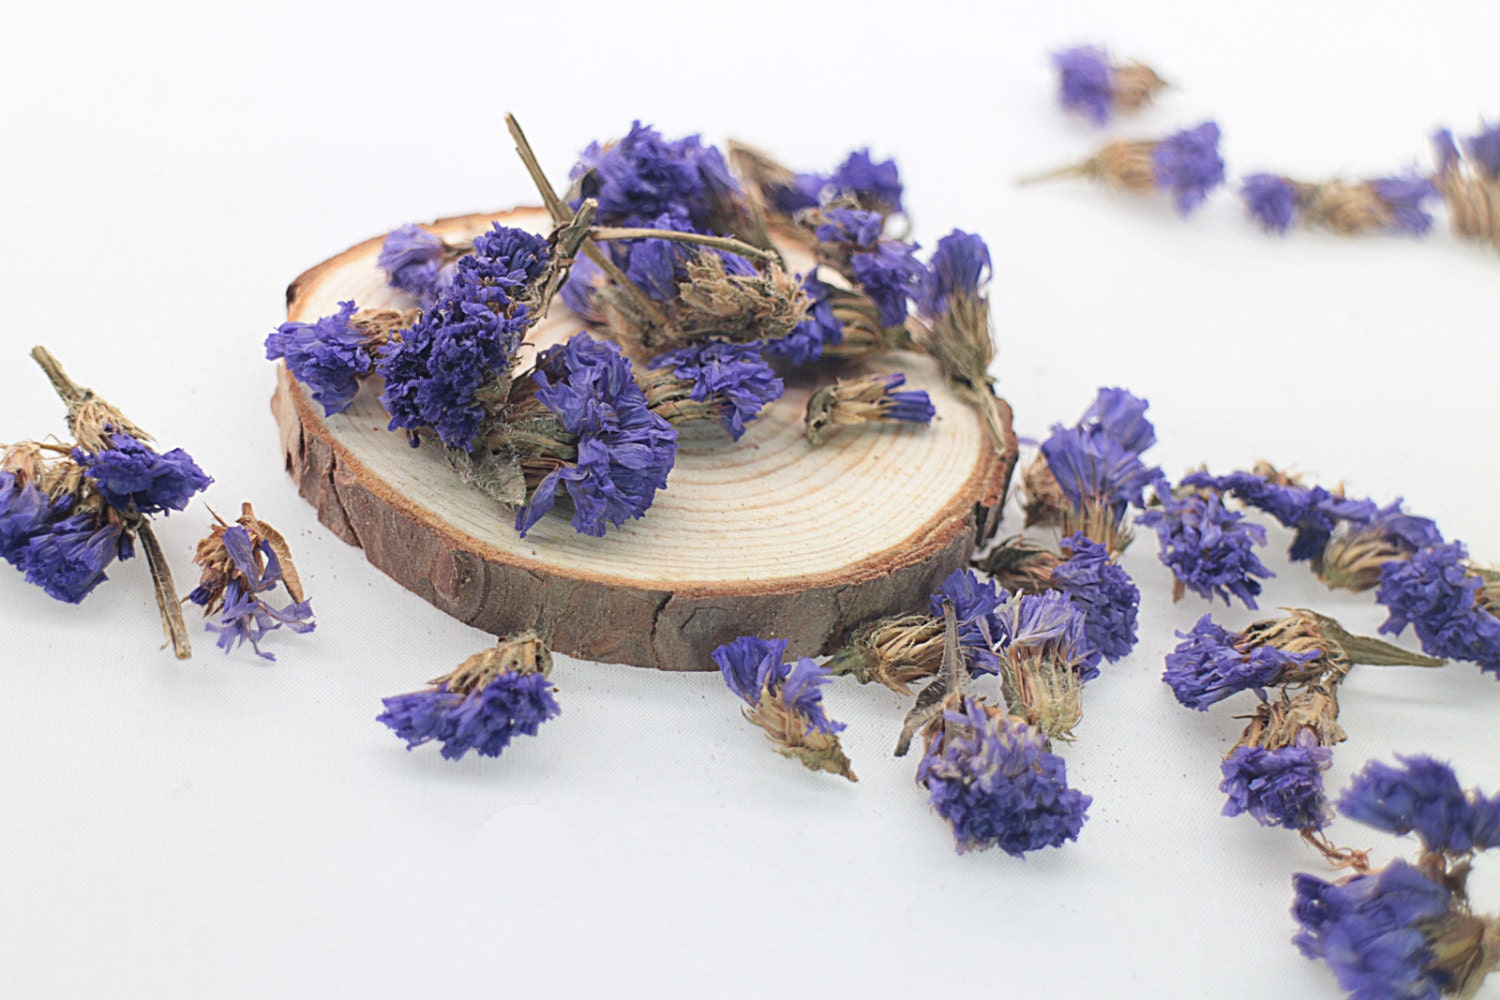 Dried Statice Flower Seed 30g Dried Flower Filler Purple Etsy